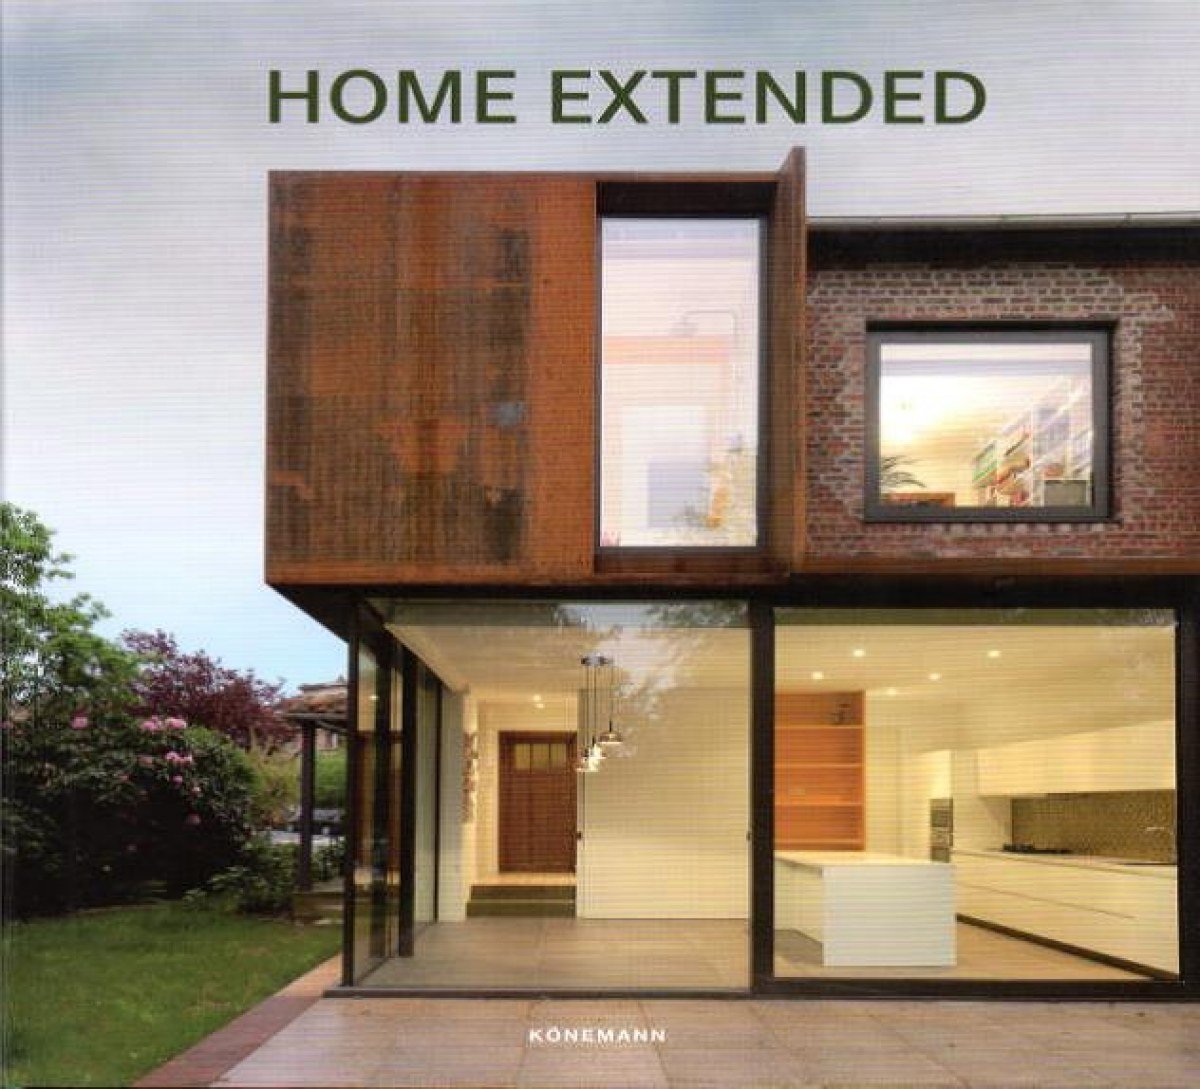 HOME EXTENDED 9783741921360